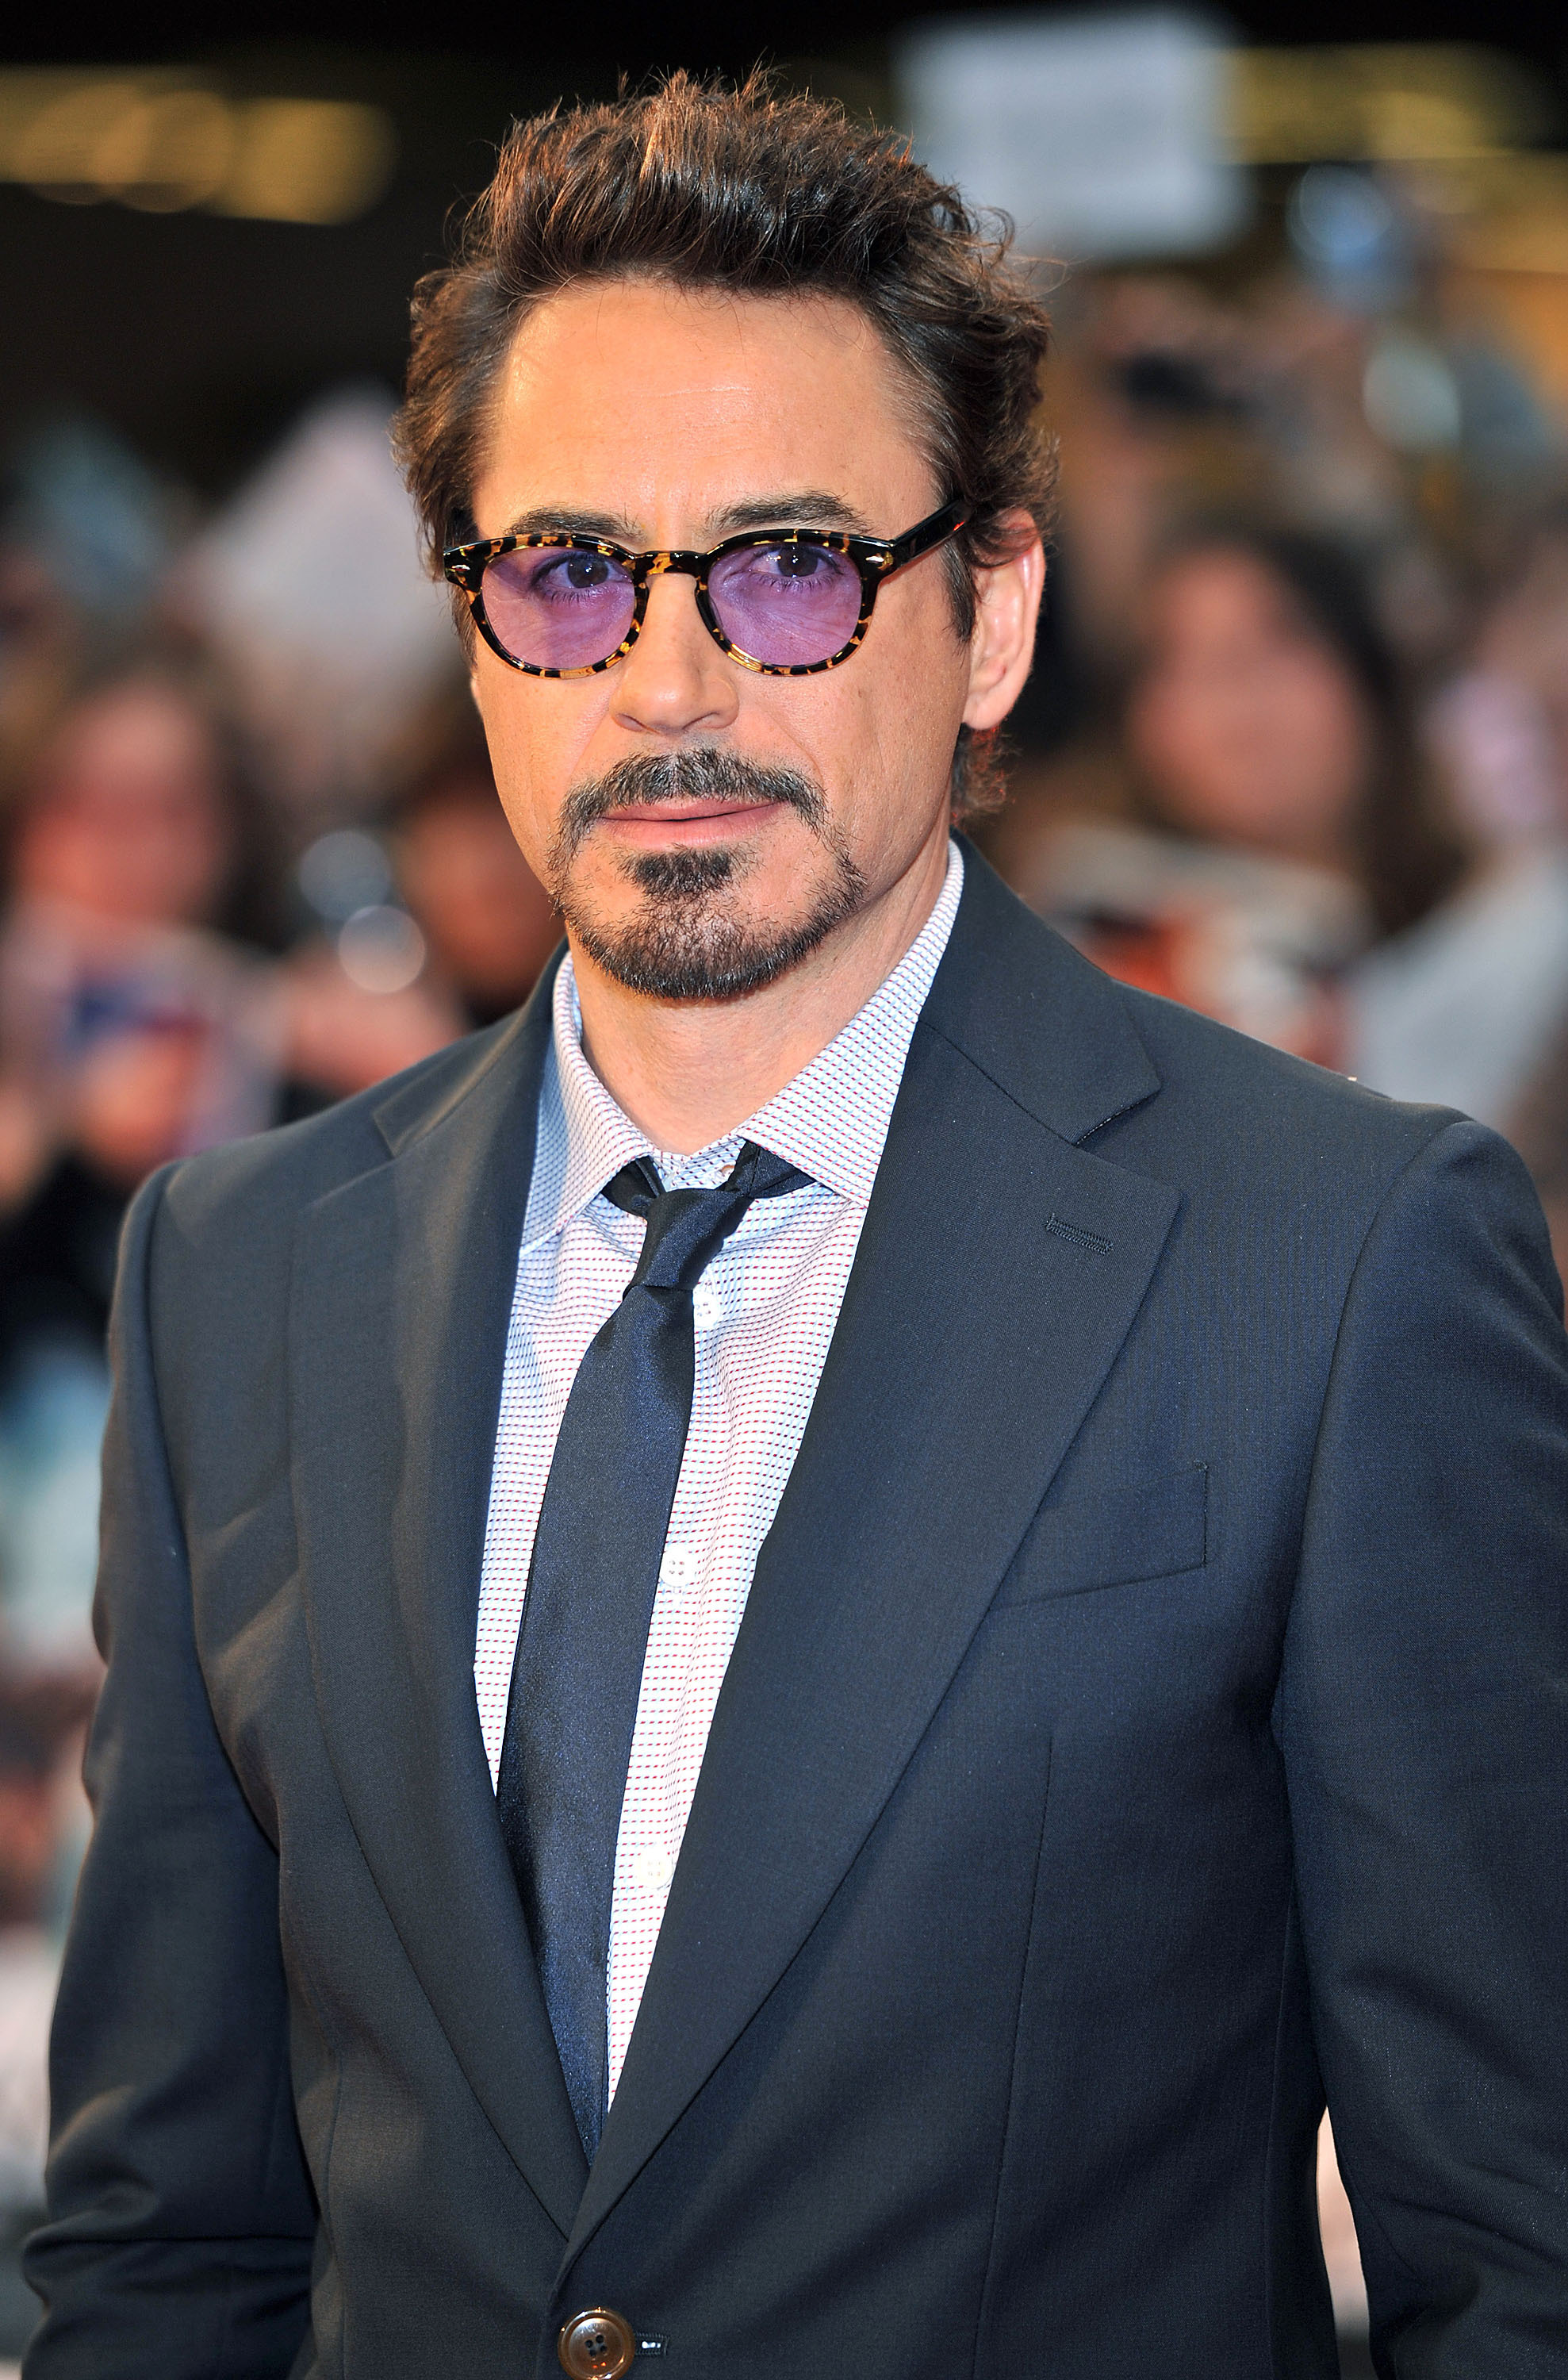 Robert Downey, Jr. (New Time) - Alternative History